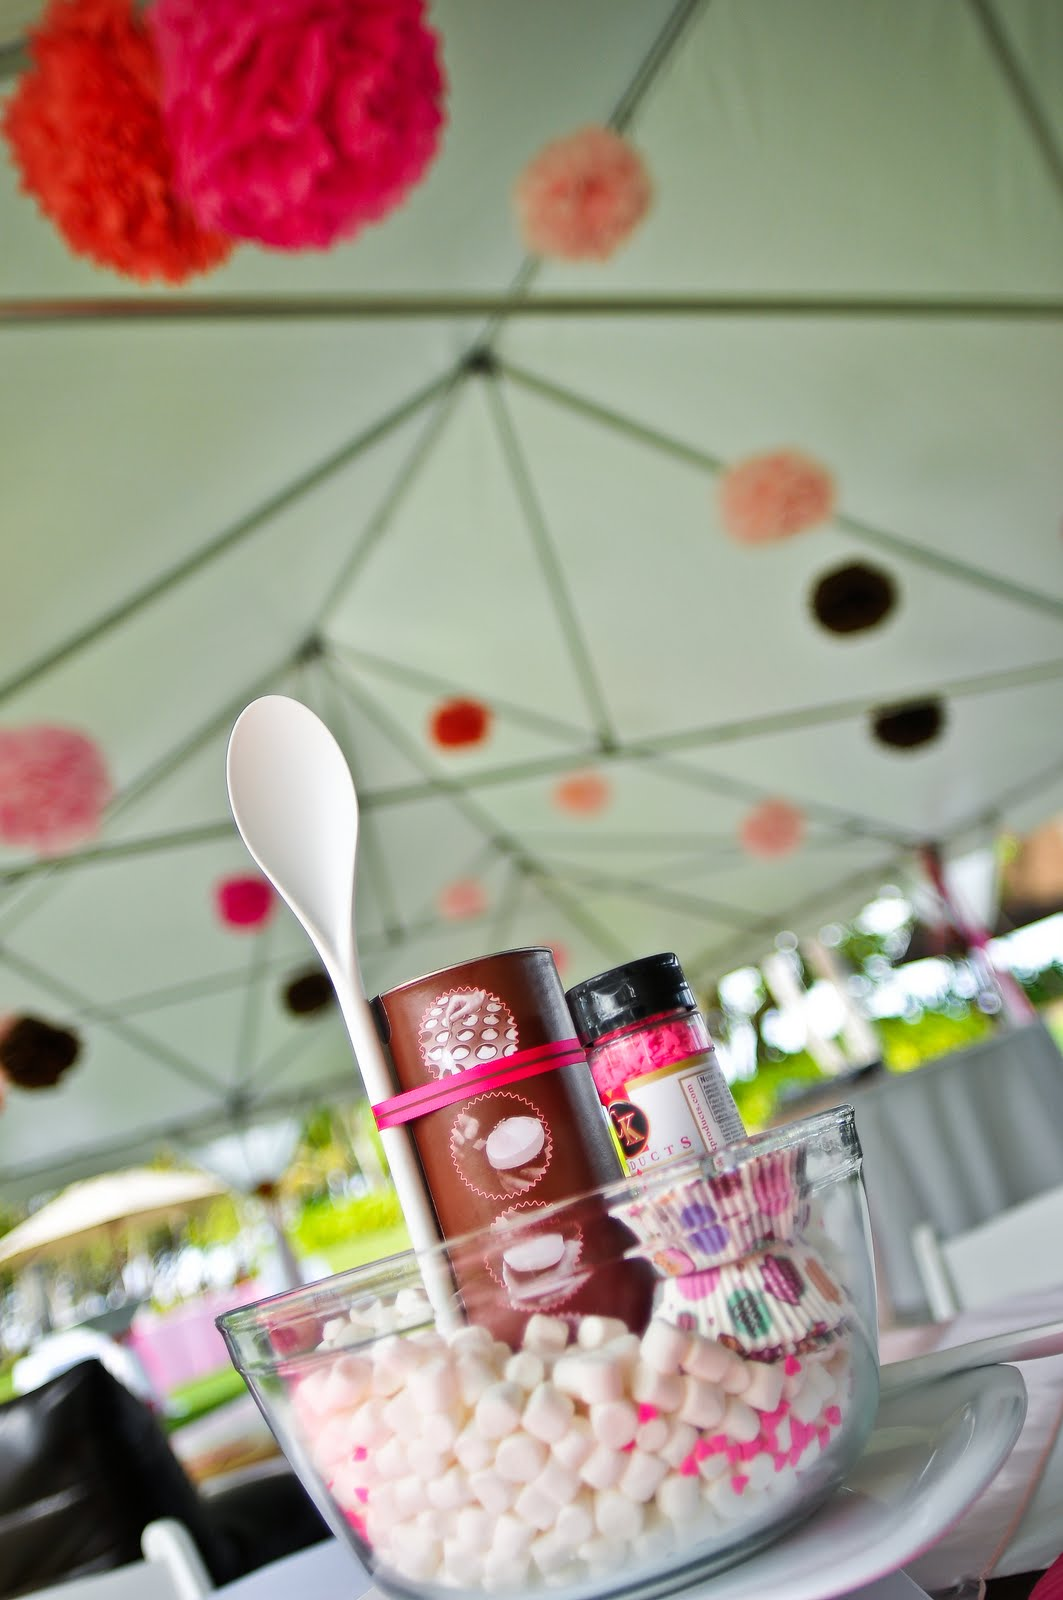 Neu events blog for the knots hawaii site wedding style tip 5 a do it yourself cupcake kit in mixing bowls filled with cupcake mix sprinkles and marshmallows adorned the rest of the tables solutioingenieria Images